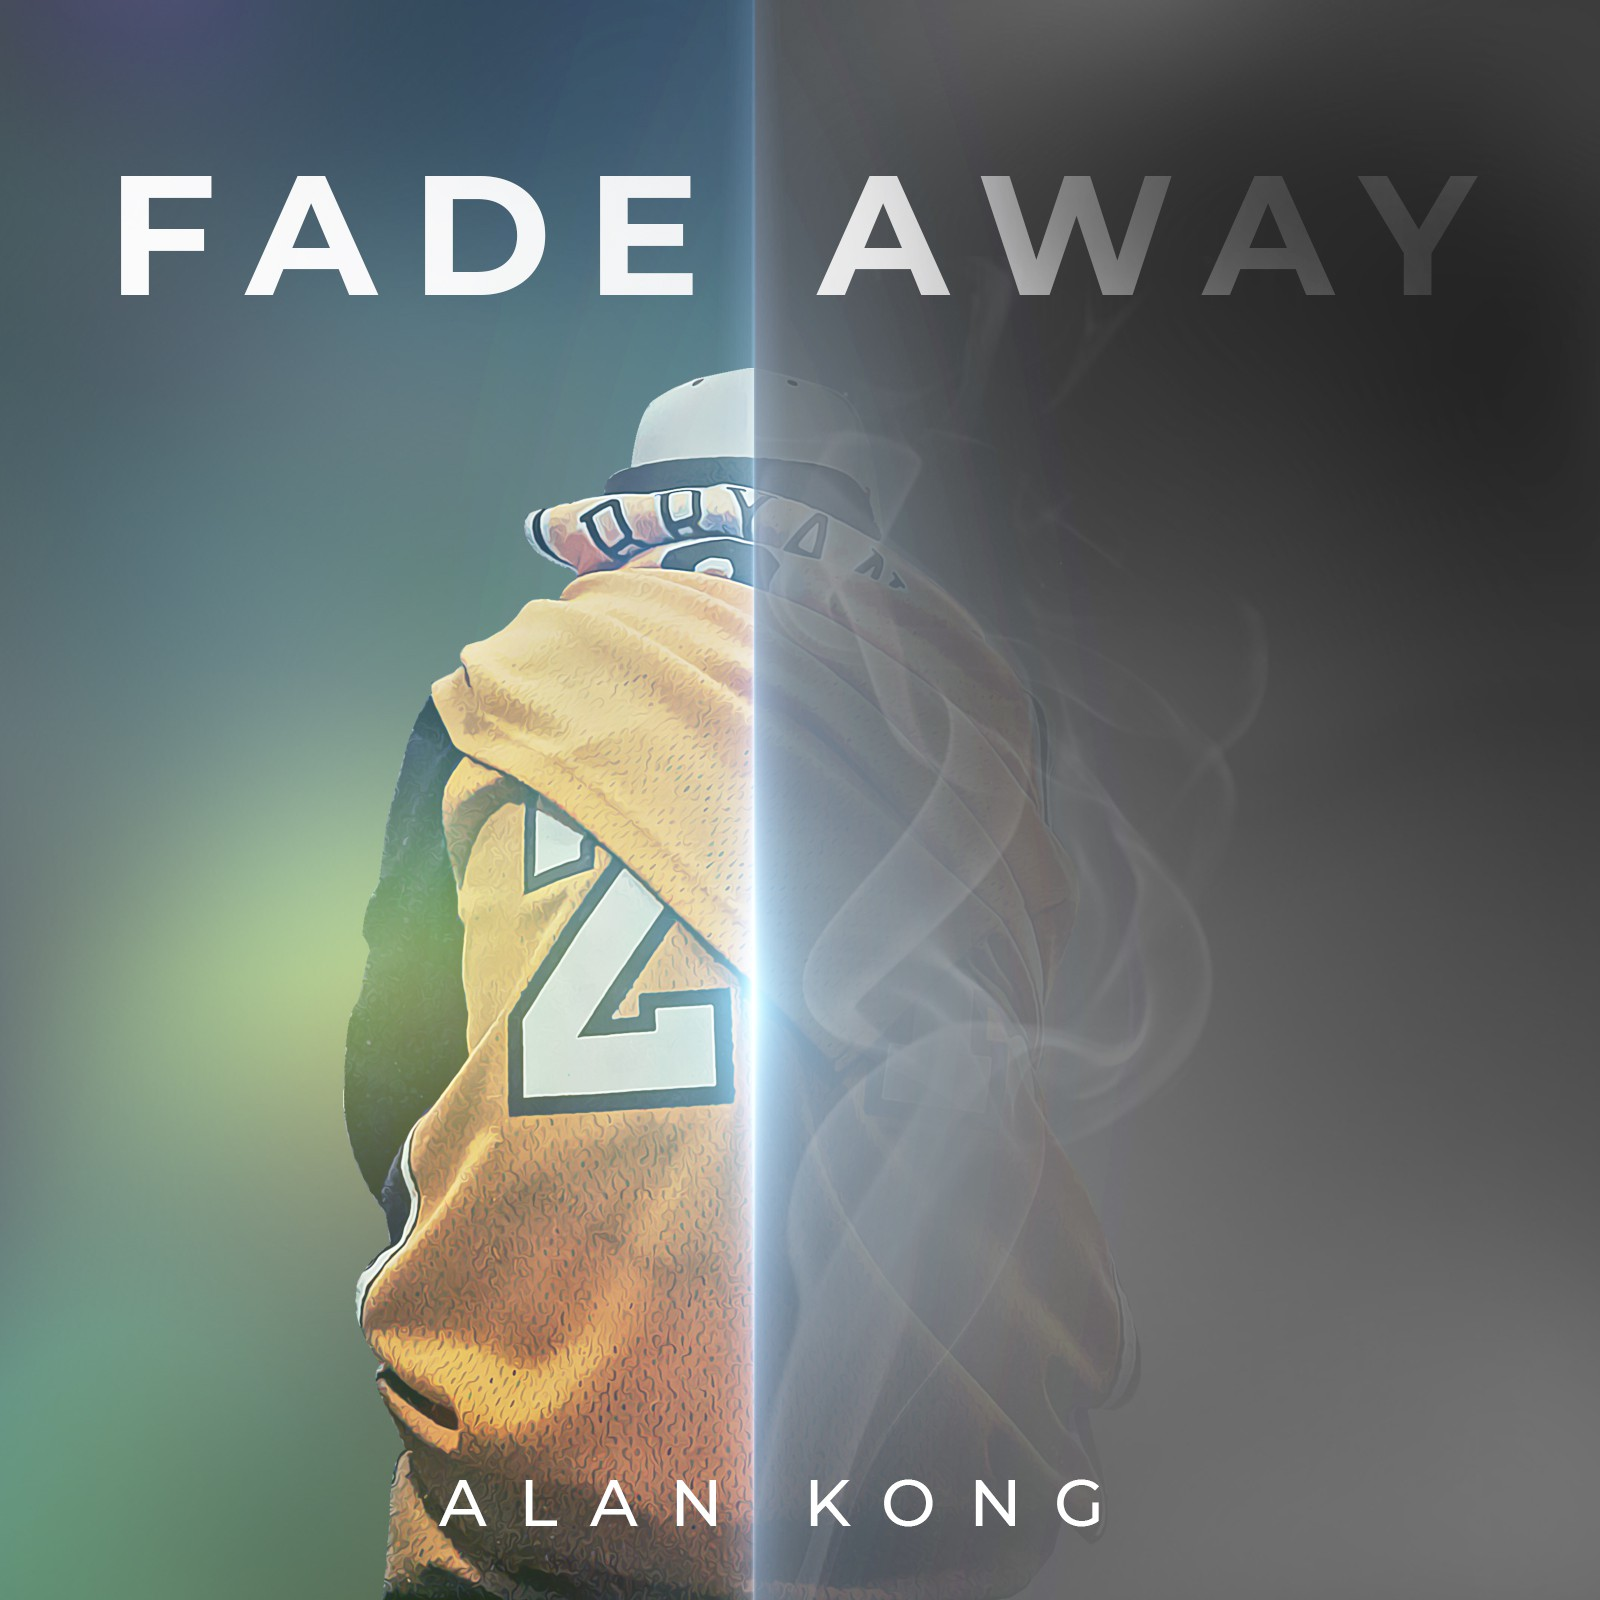 Kobe Song - Name Title is: Fade Away